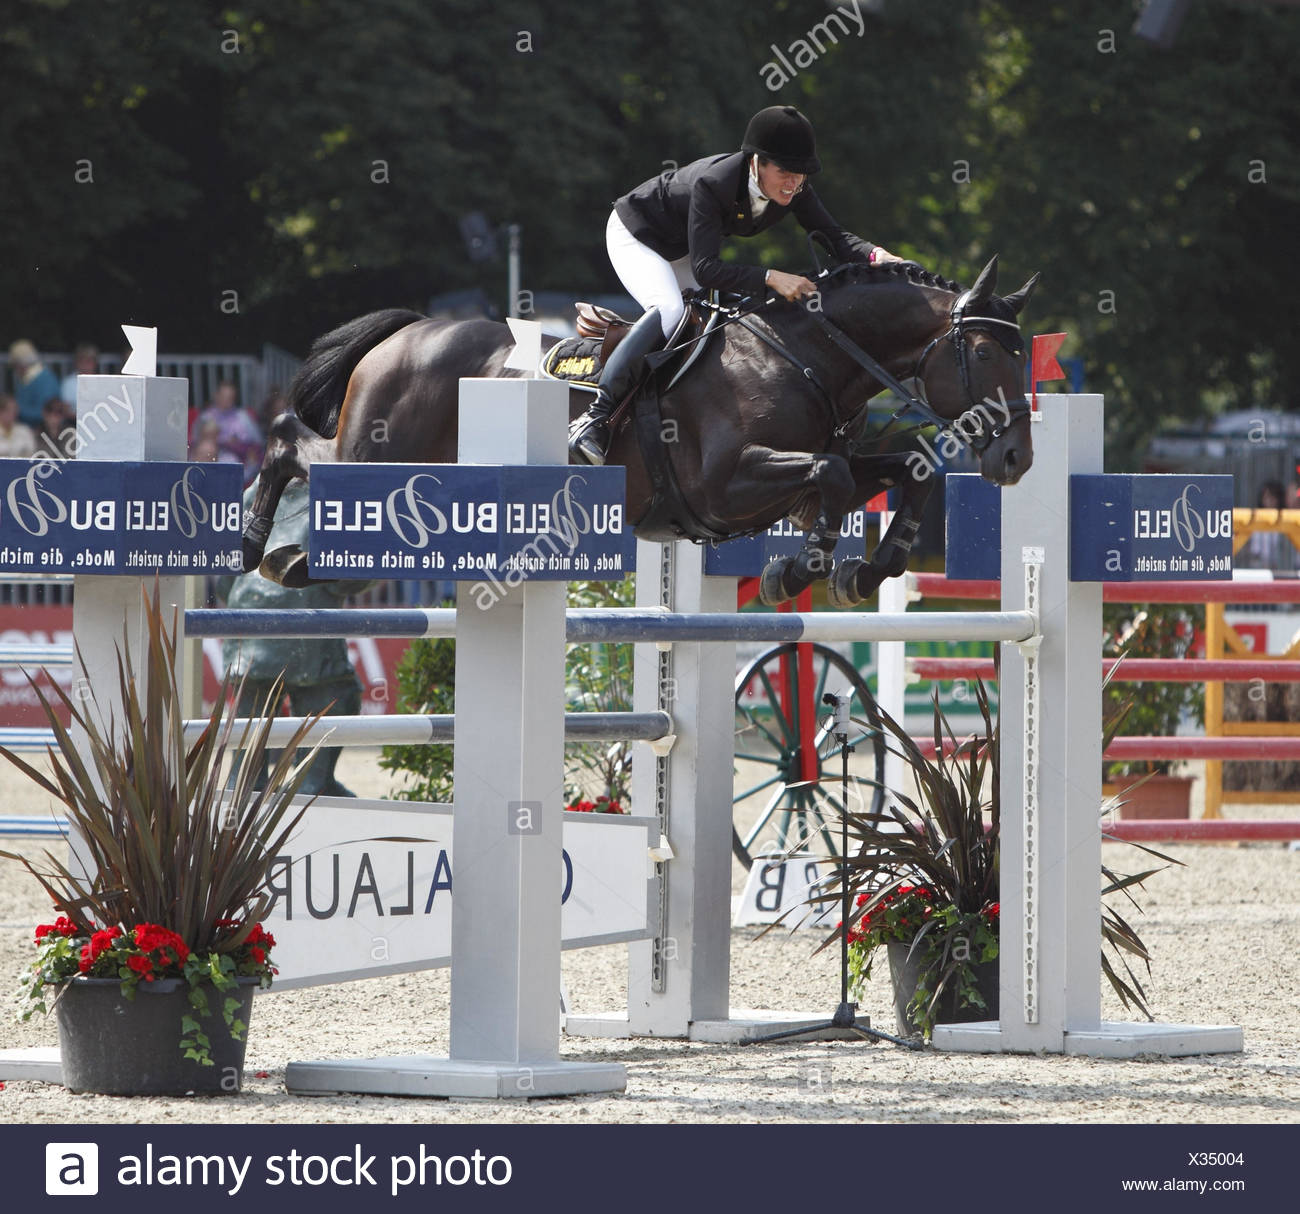 Horse-racing,German championships jumping and training in 2010 in Münster,Springreiterinnen,Eve Bitter on Satisfaction 10, - Stock Image